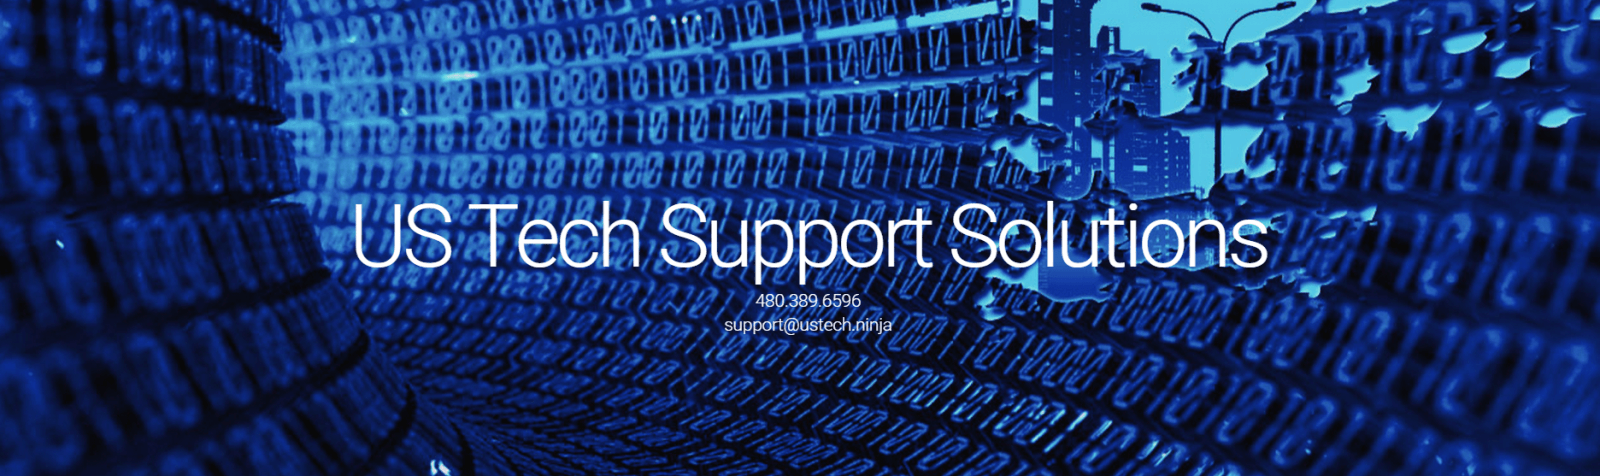 2015-05-14 13_20_16-US Tech Support Solutions